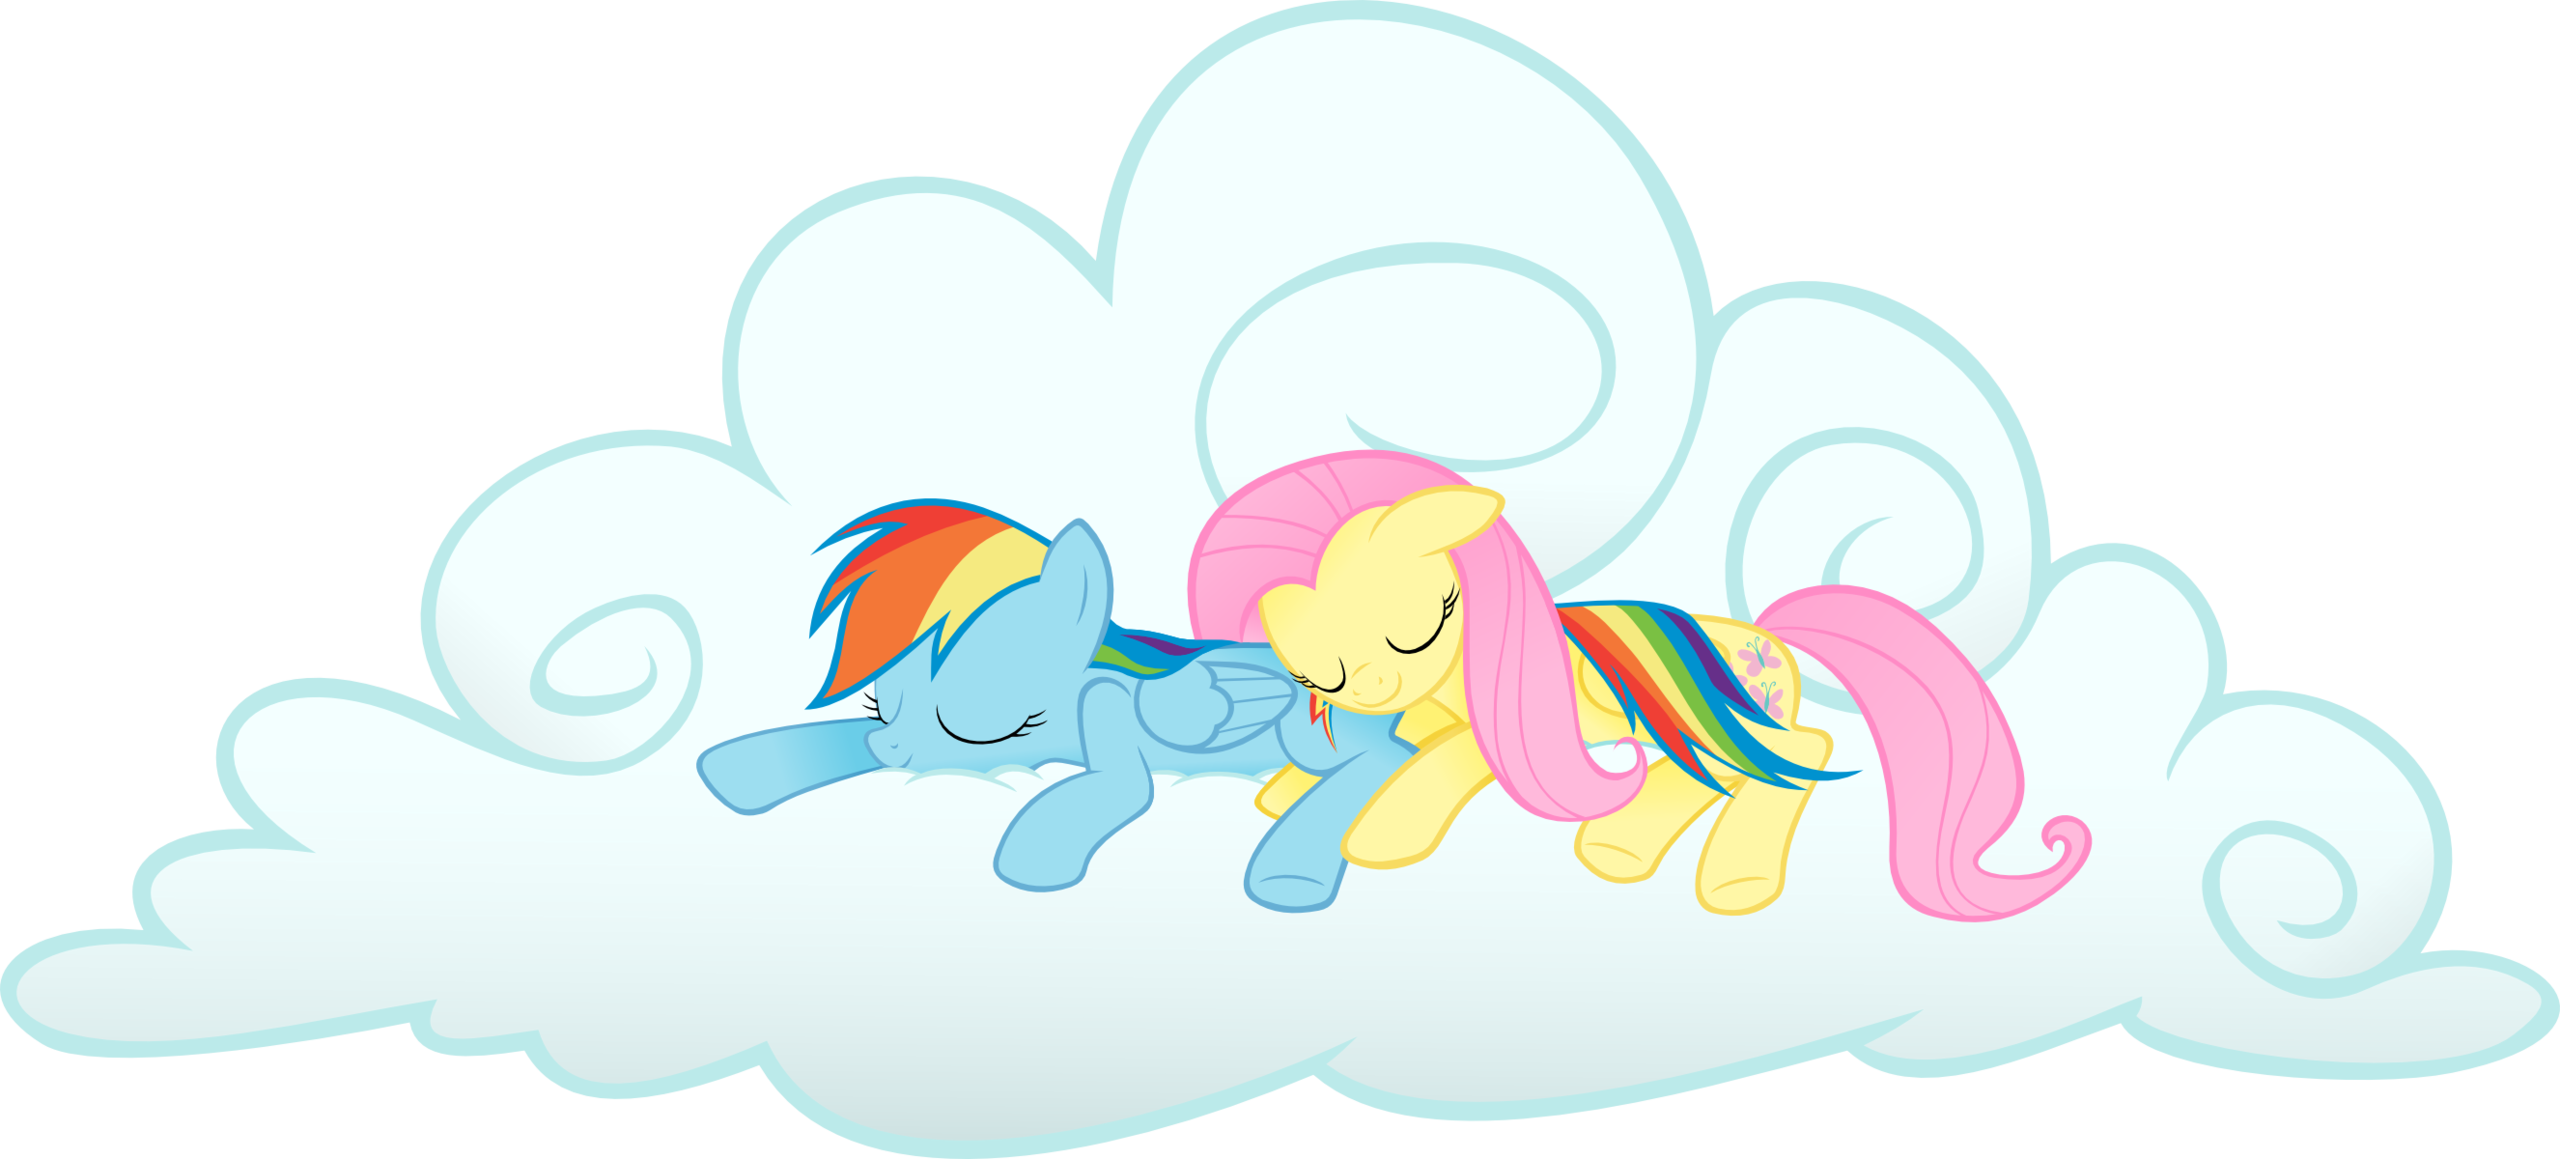 Best pillow ever <3 - FlutterDash Photo (28211961) - Fanpop fanclubs